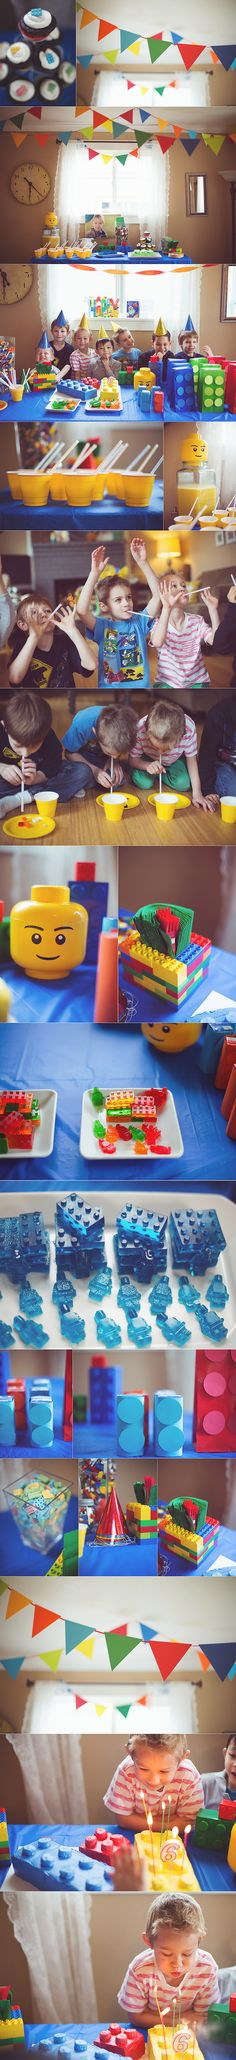 Lego Birthday | Personal | Tacoma Family Photographer » Kristal Joy Photography